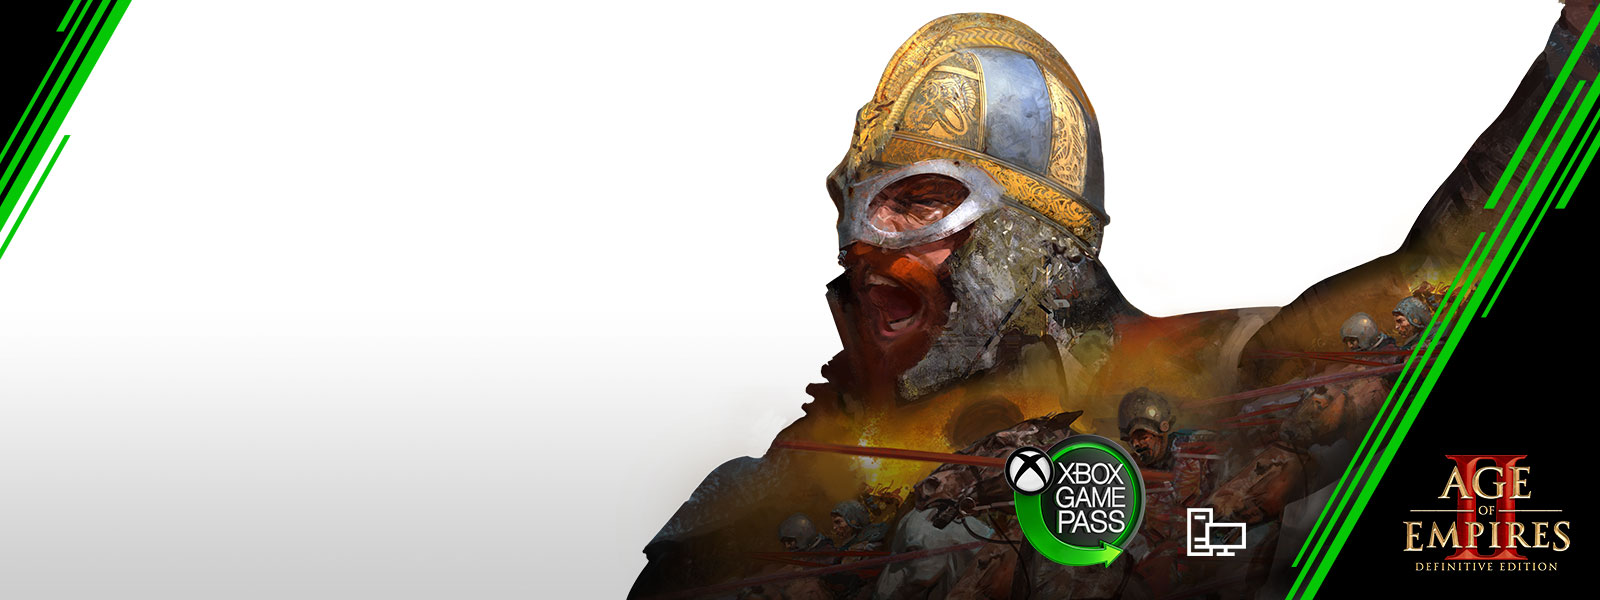 Logo de Xbox Game Pass, Age of Empires II: Definitive Edition, Illustration graphique d'un soldat en armure de métal hurlant au milieu d'une bataille